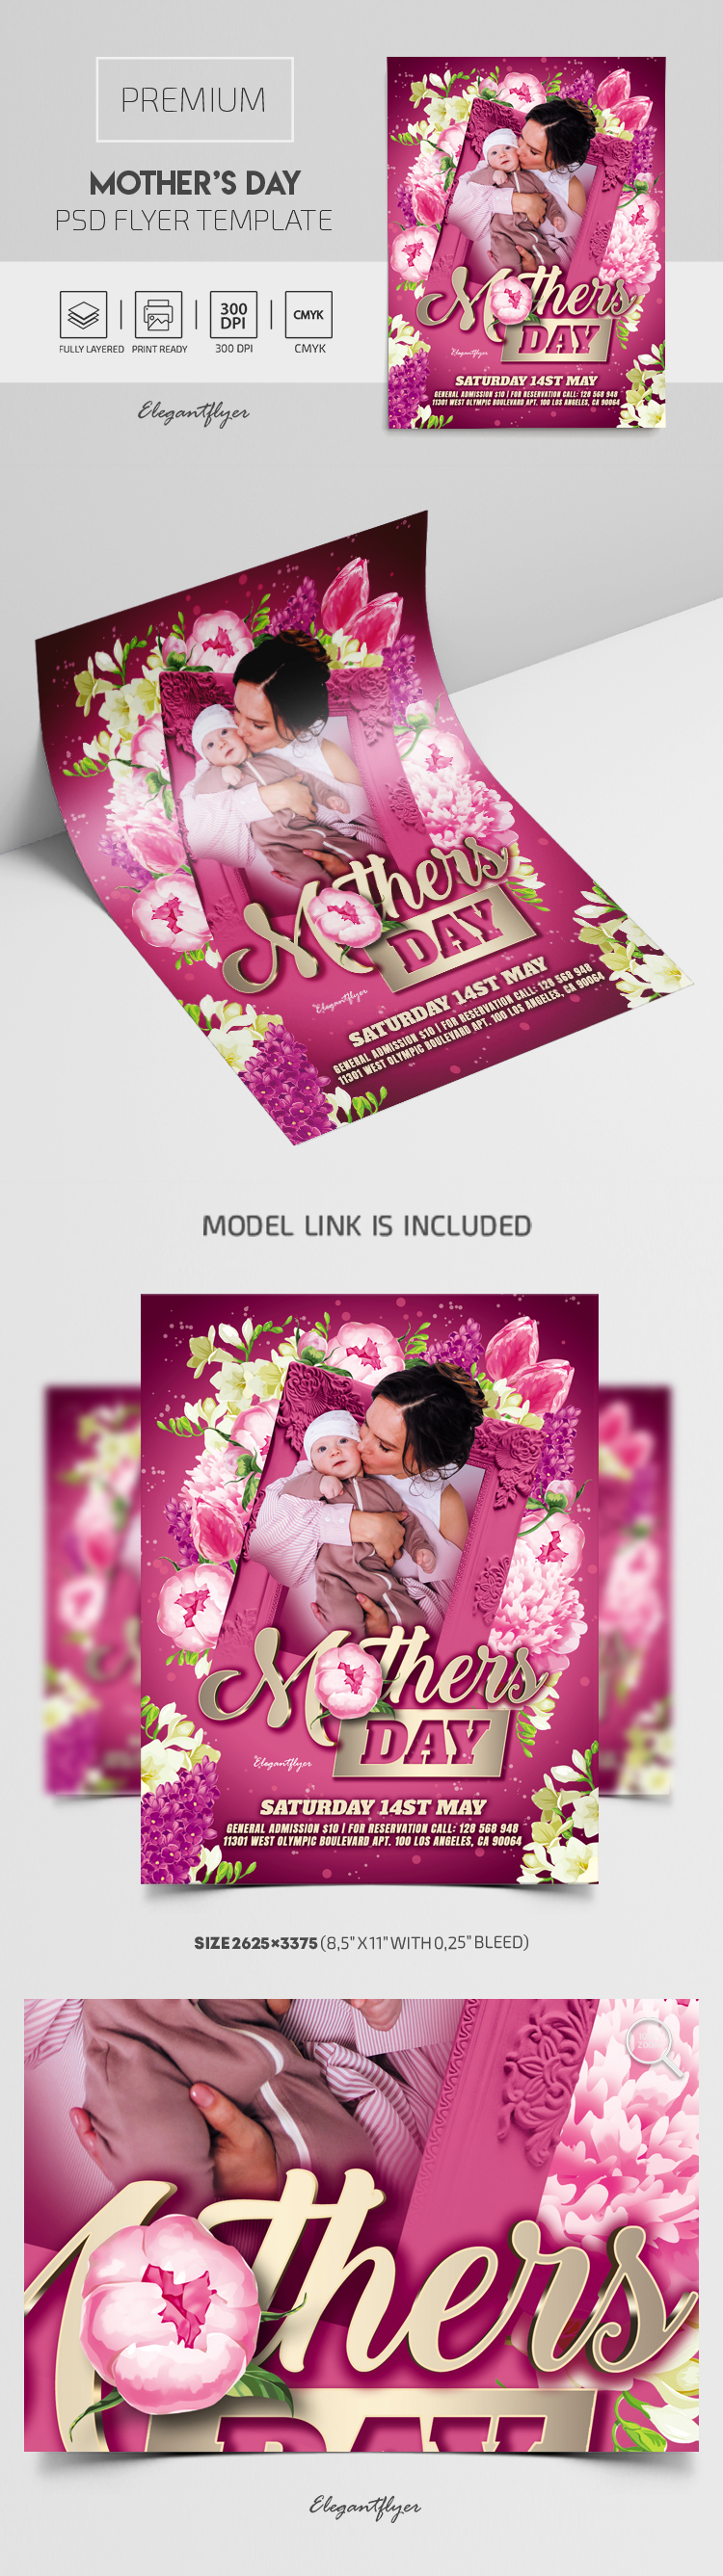 Mother's Day – Premium PSD Flyer Template